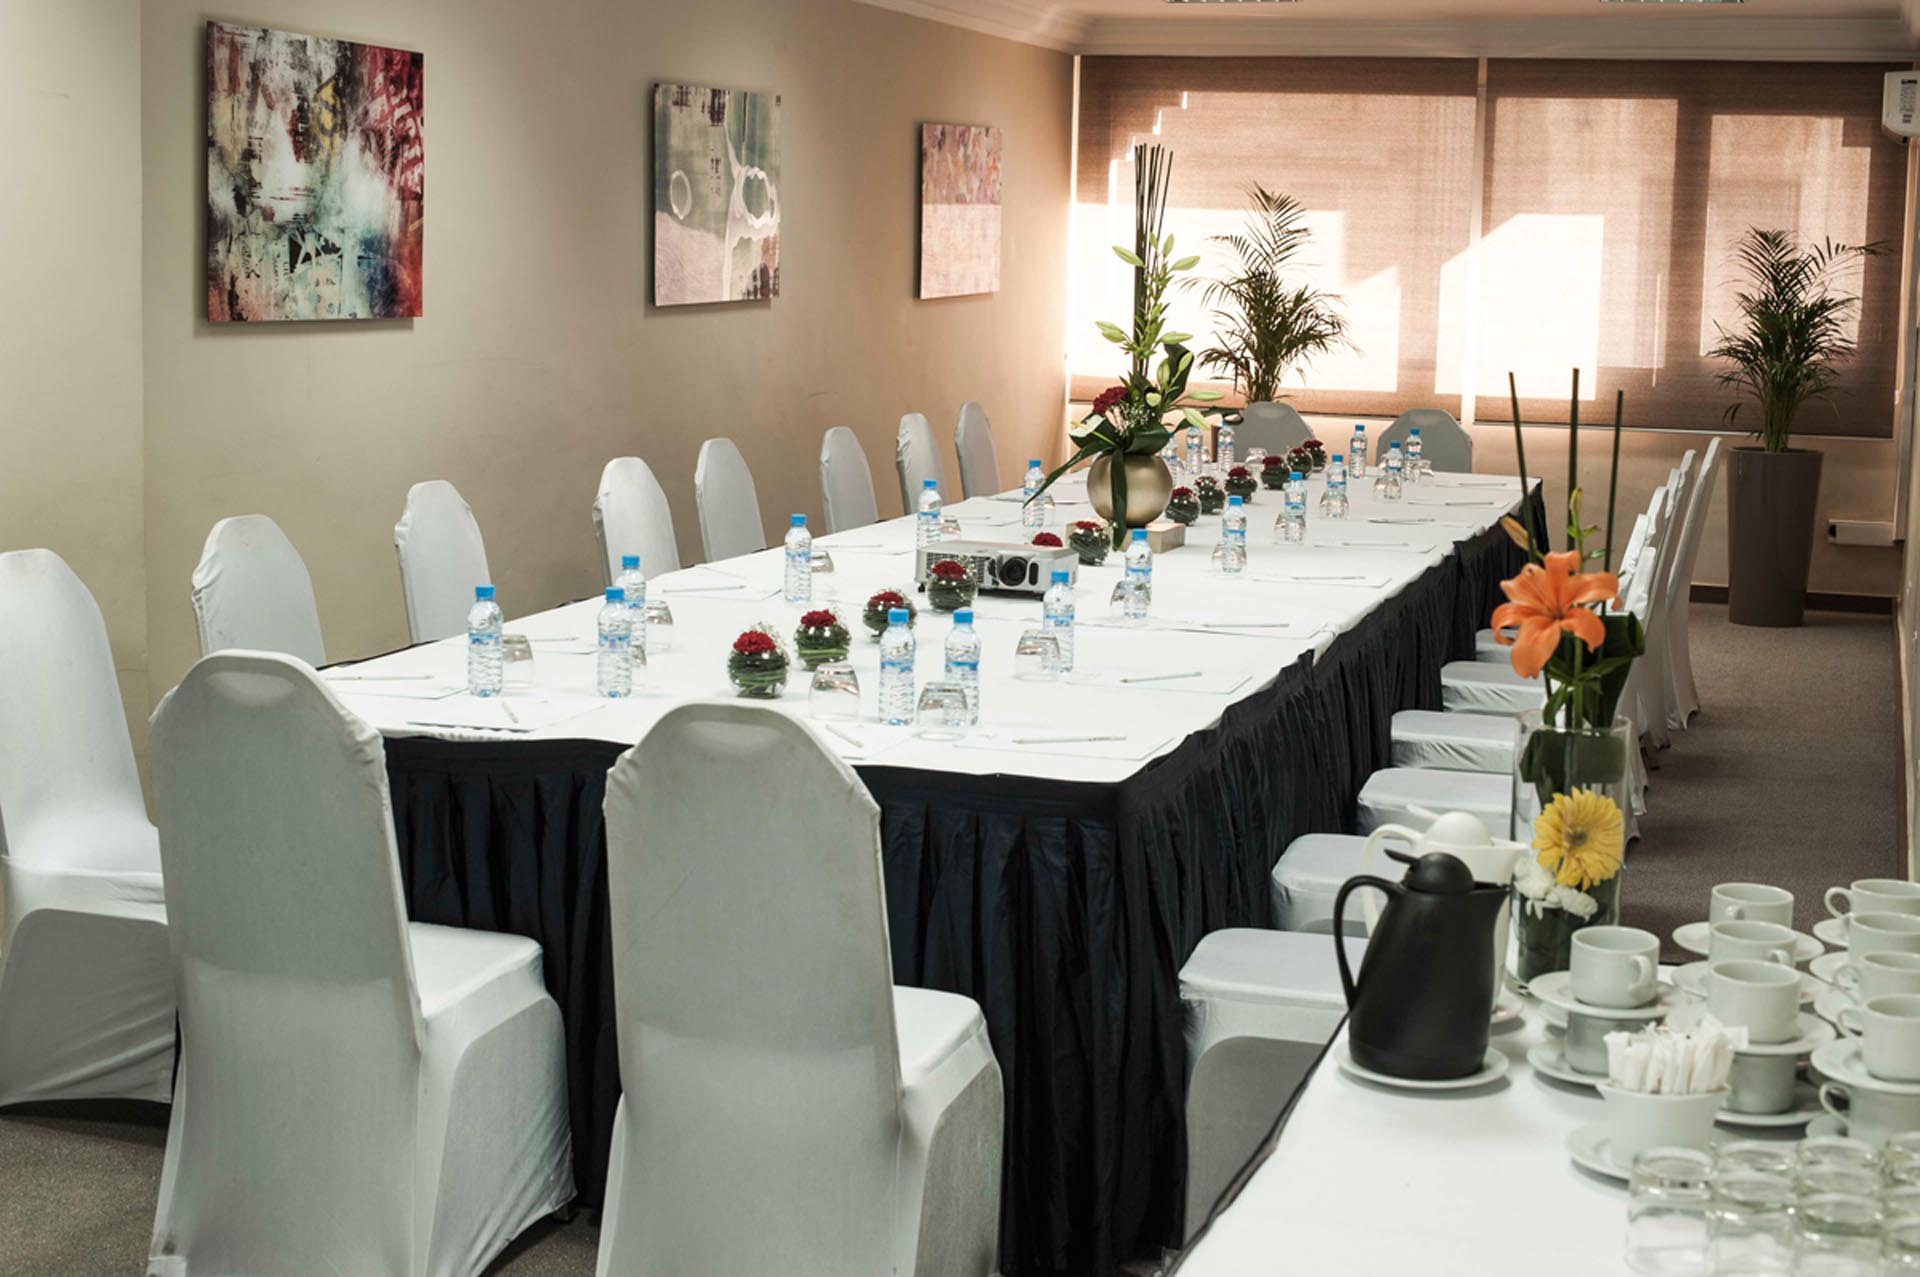 Incentive events at Kenzi Basma Hotel in Casablanca, Morocco